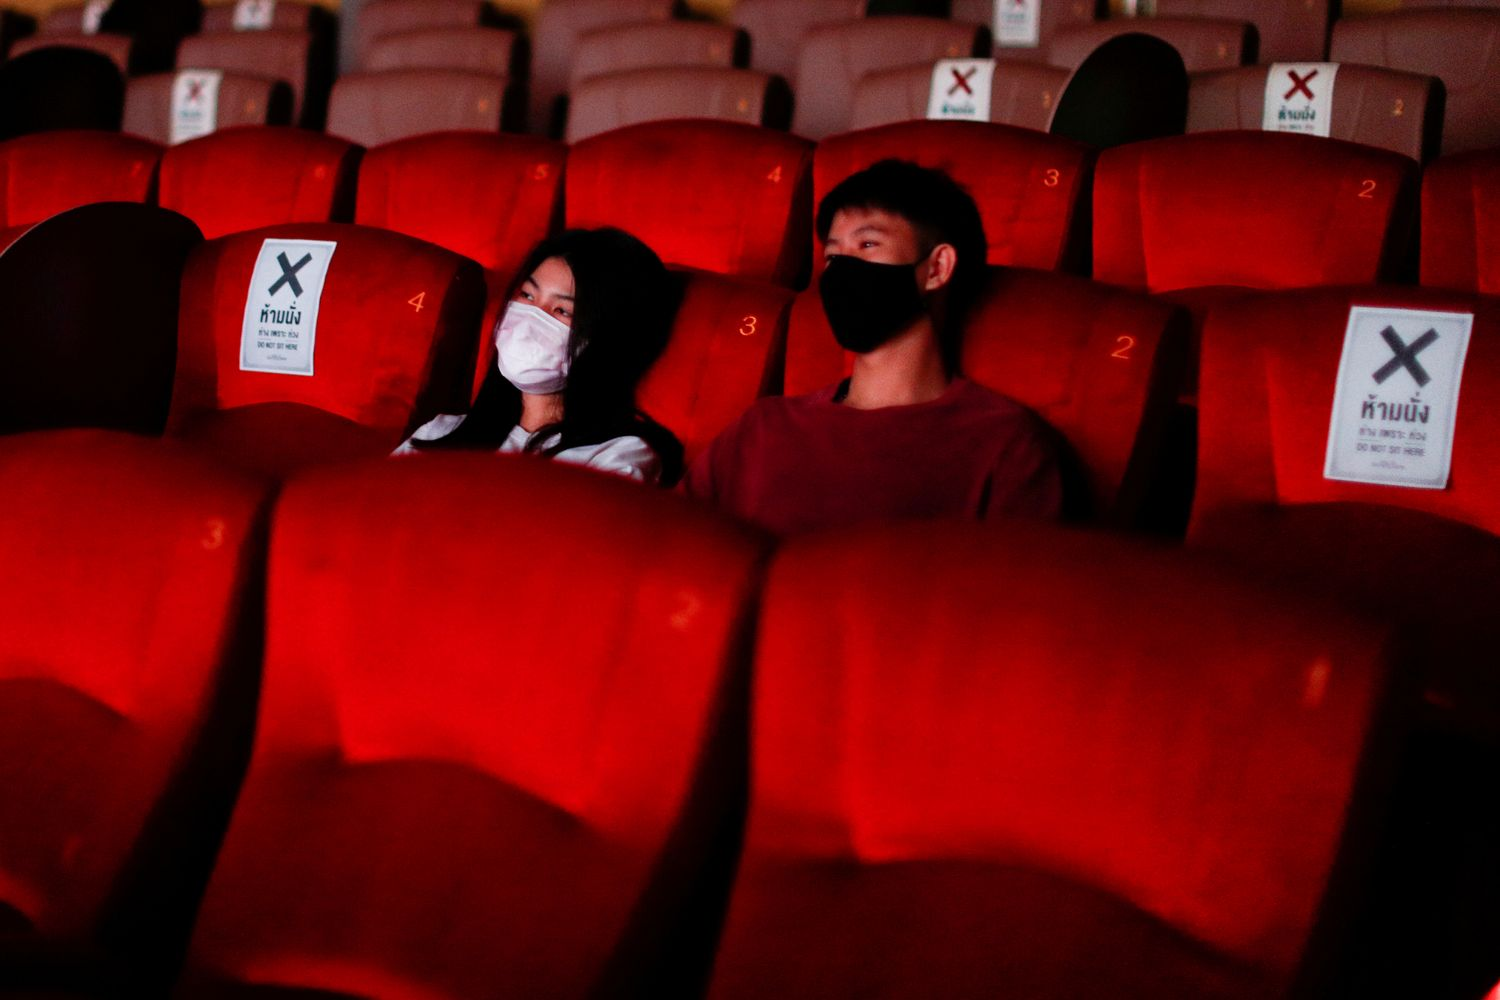 People wearing protective face masks are seen inside a movie theatre during its reopening after the government eased isolation measures to prevent the spread of the coronavirus disease in Bangkok on Monday. (Reuters photo)